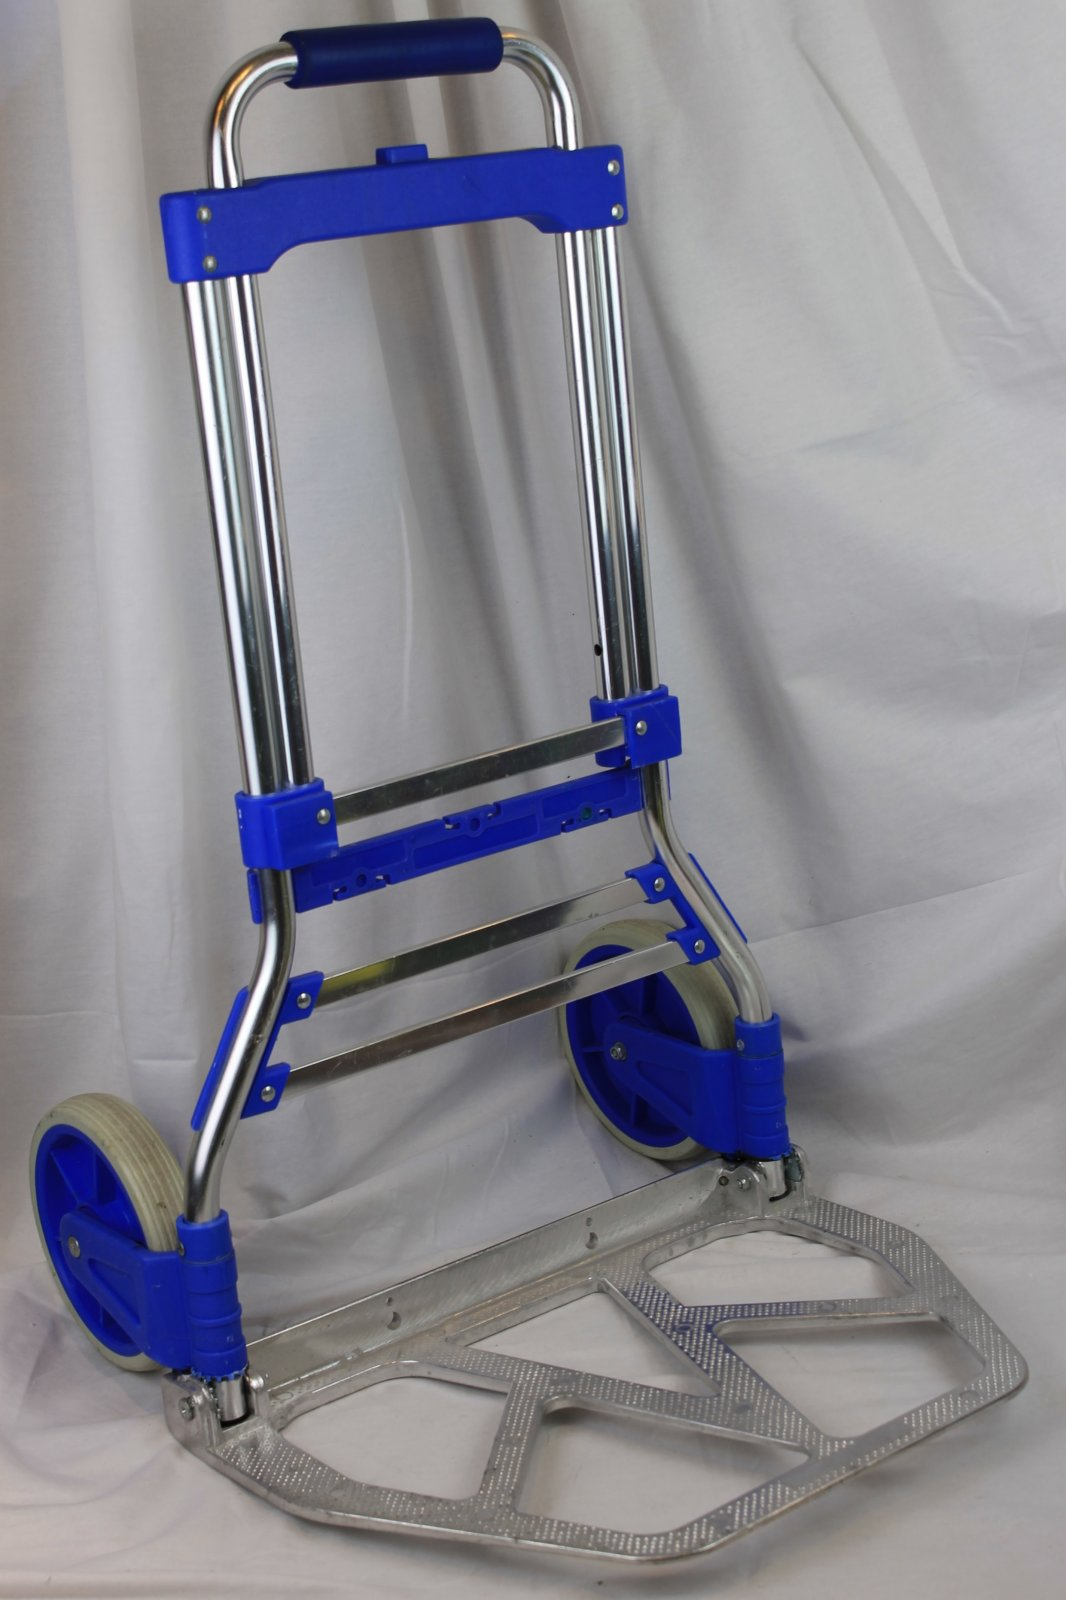 Folding Hand Truck Light Weight Portable Trolley Cart for Accordion Case or Amp